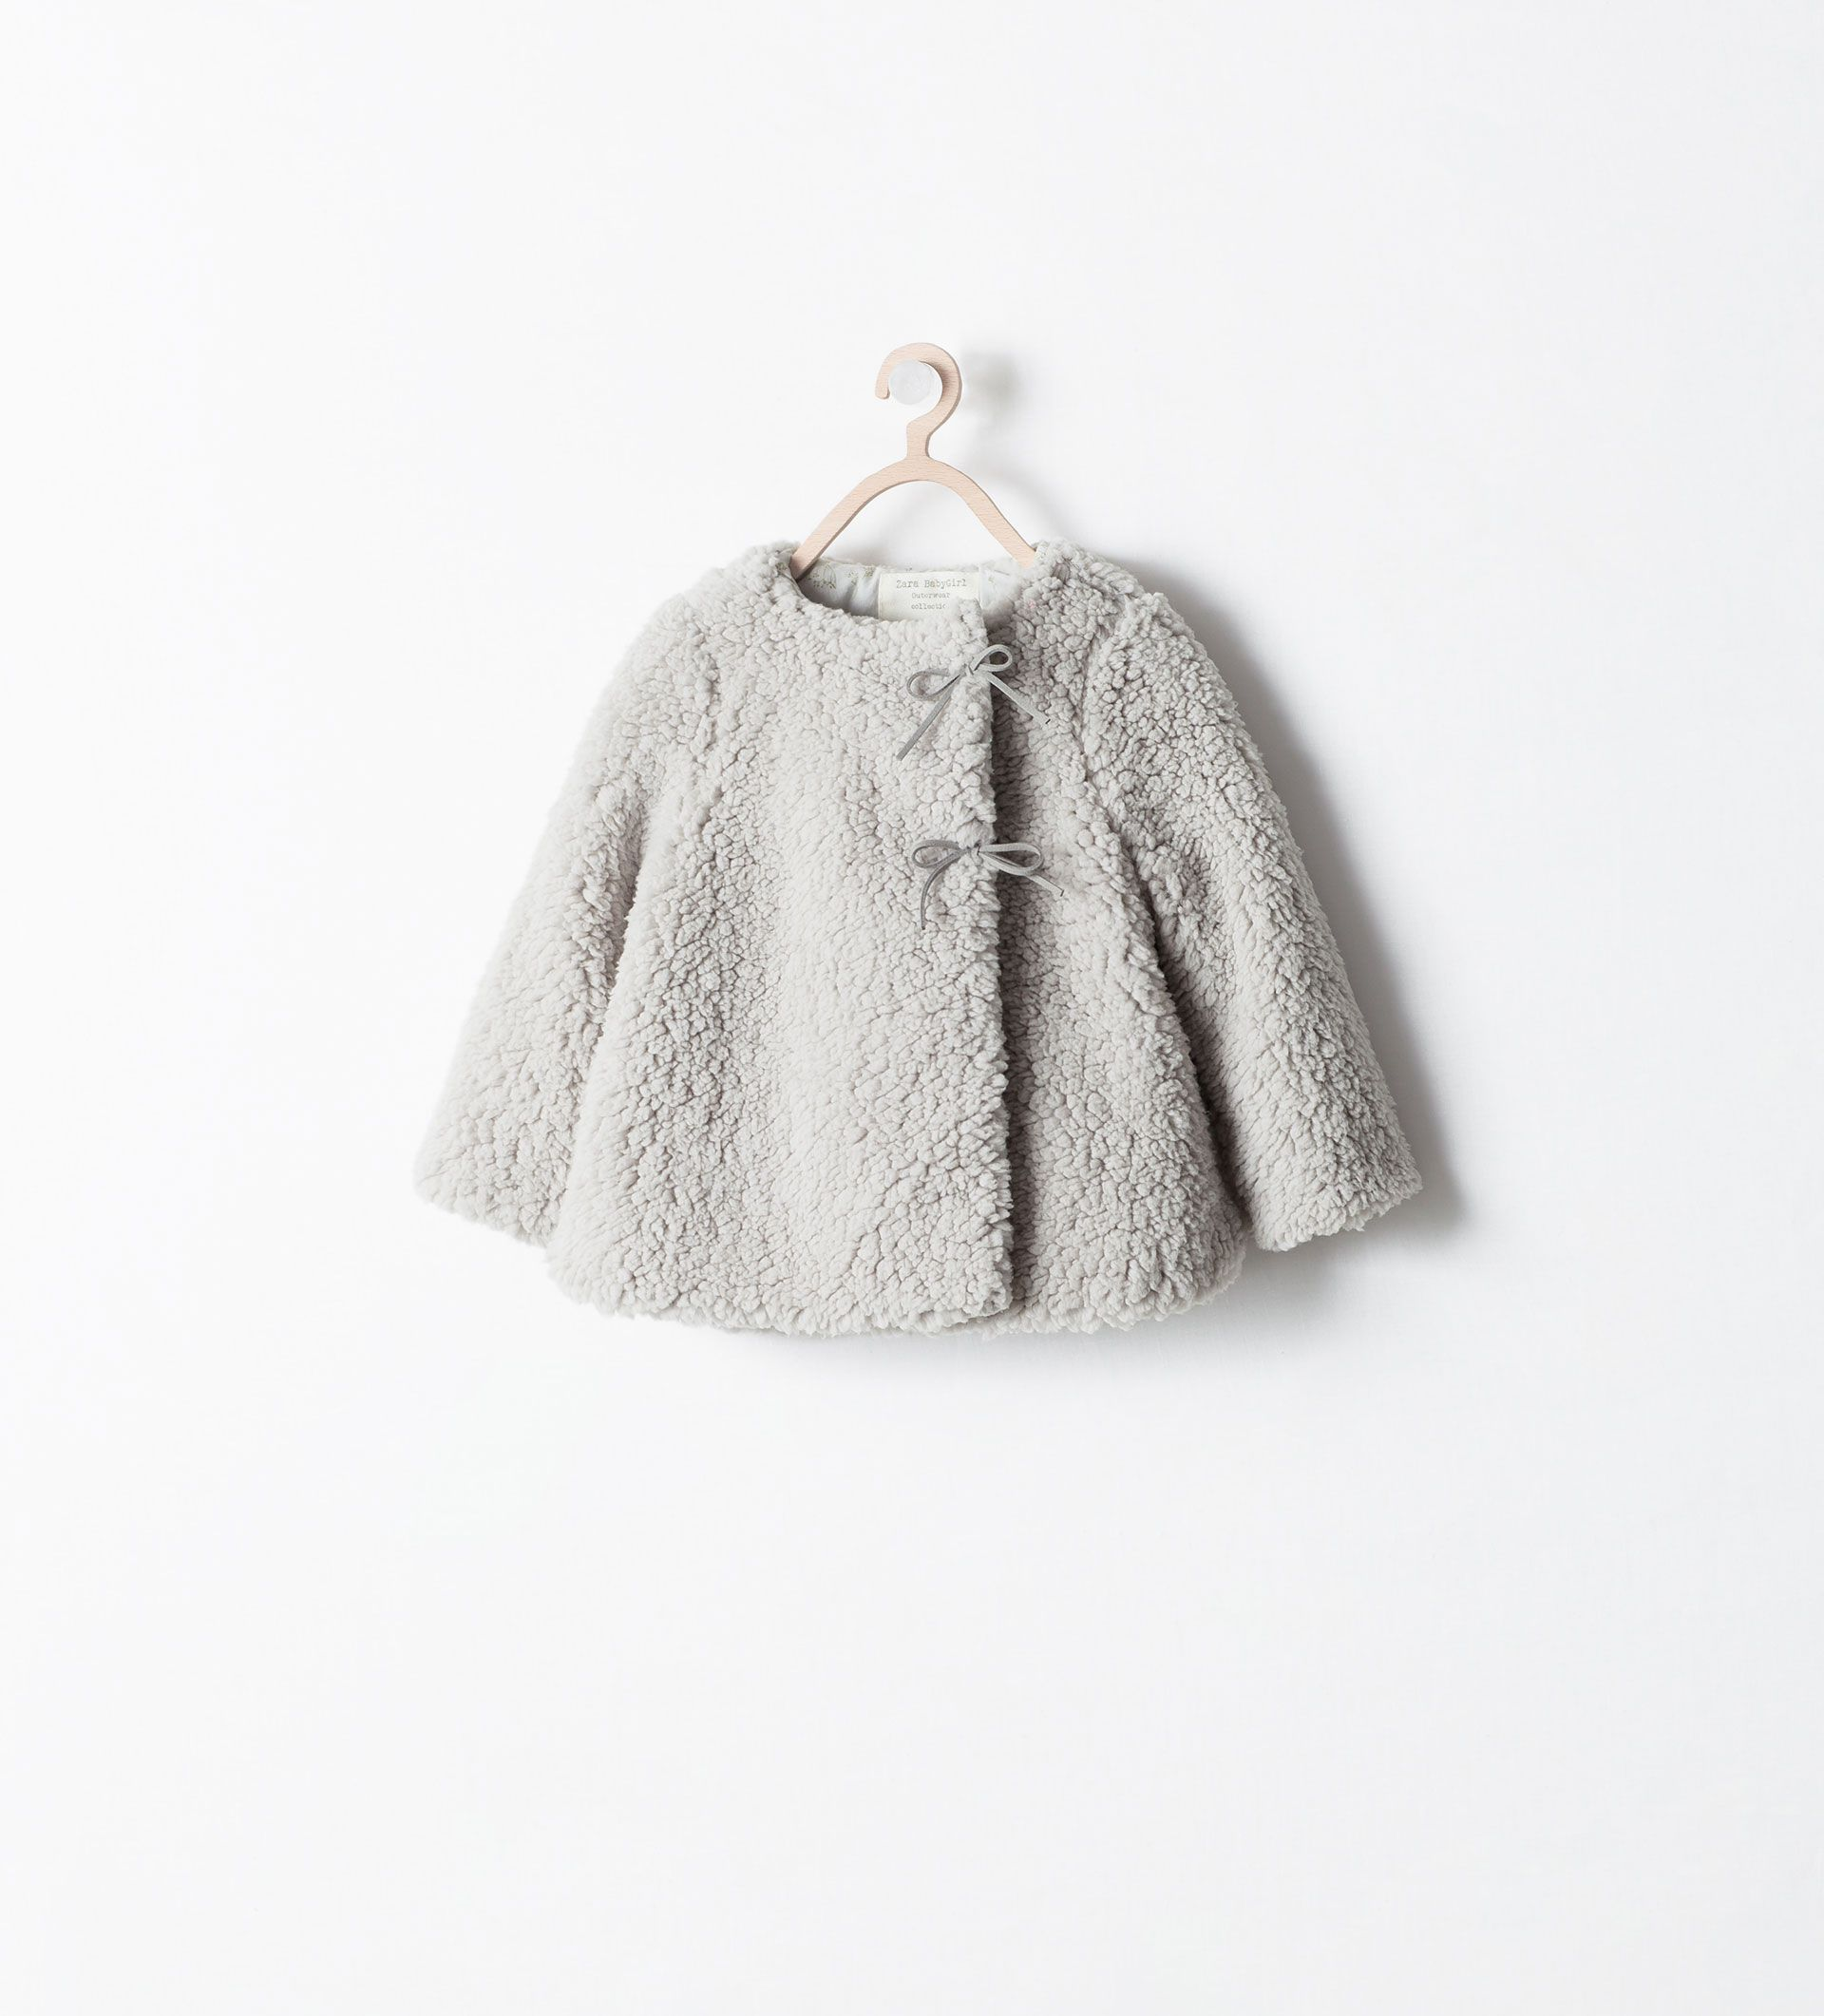 June Image 1 Of Fleece Jacket With Flap Closure From Zara Babykleidung Madchen Outfit Herbst Modische Madchen